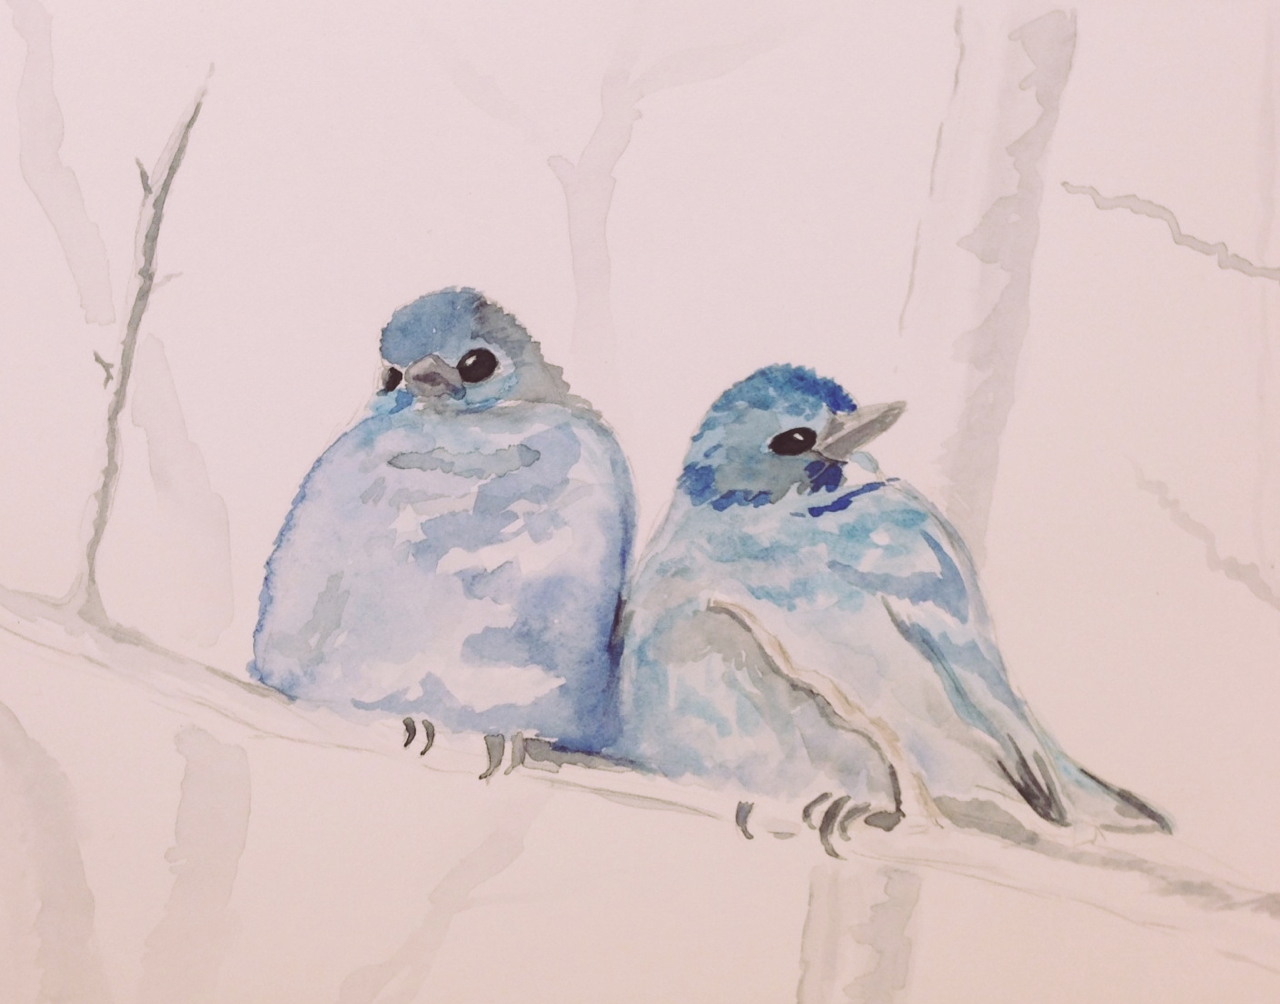 Our furnace went on strike at some point last night and we woke to a very chilly house! Now that it's fixed and I'm very appreciative of the warmth, I decided to post some winter birdies.